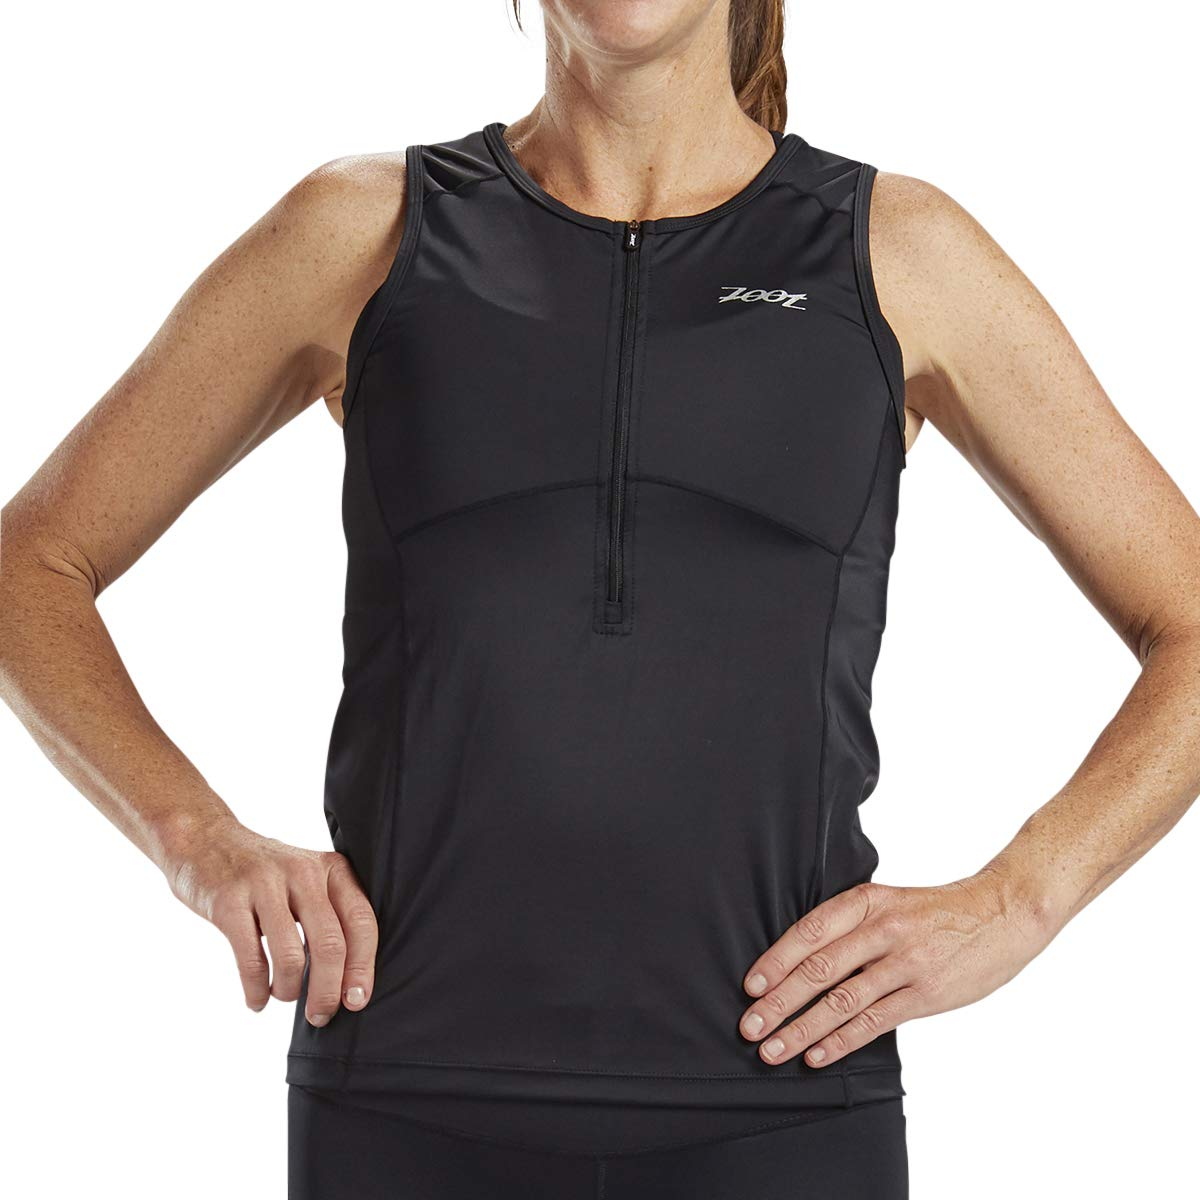 Zoot Women's Core Tri Tank - Performance Triathlon Top with Mesh Panels and 3 Pockets (Black, X Small)